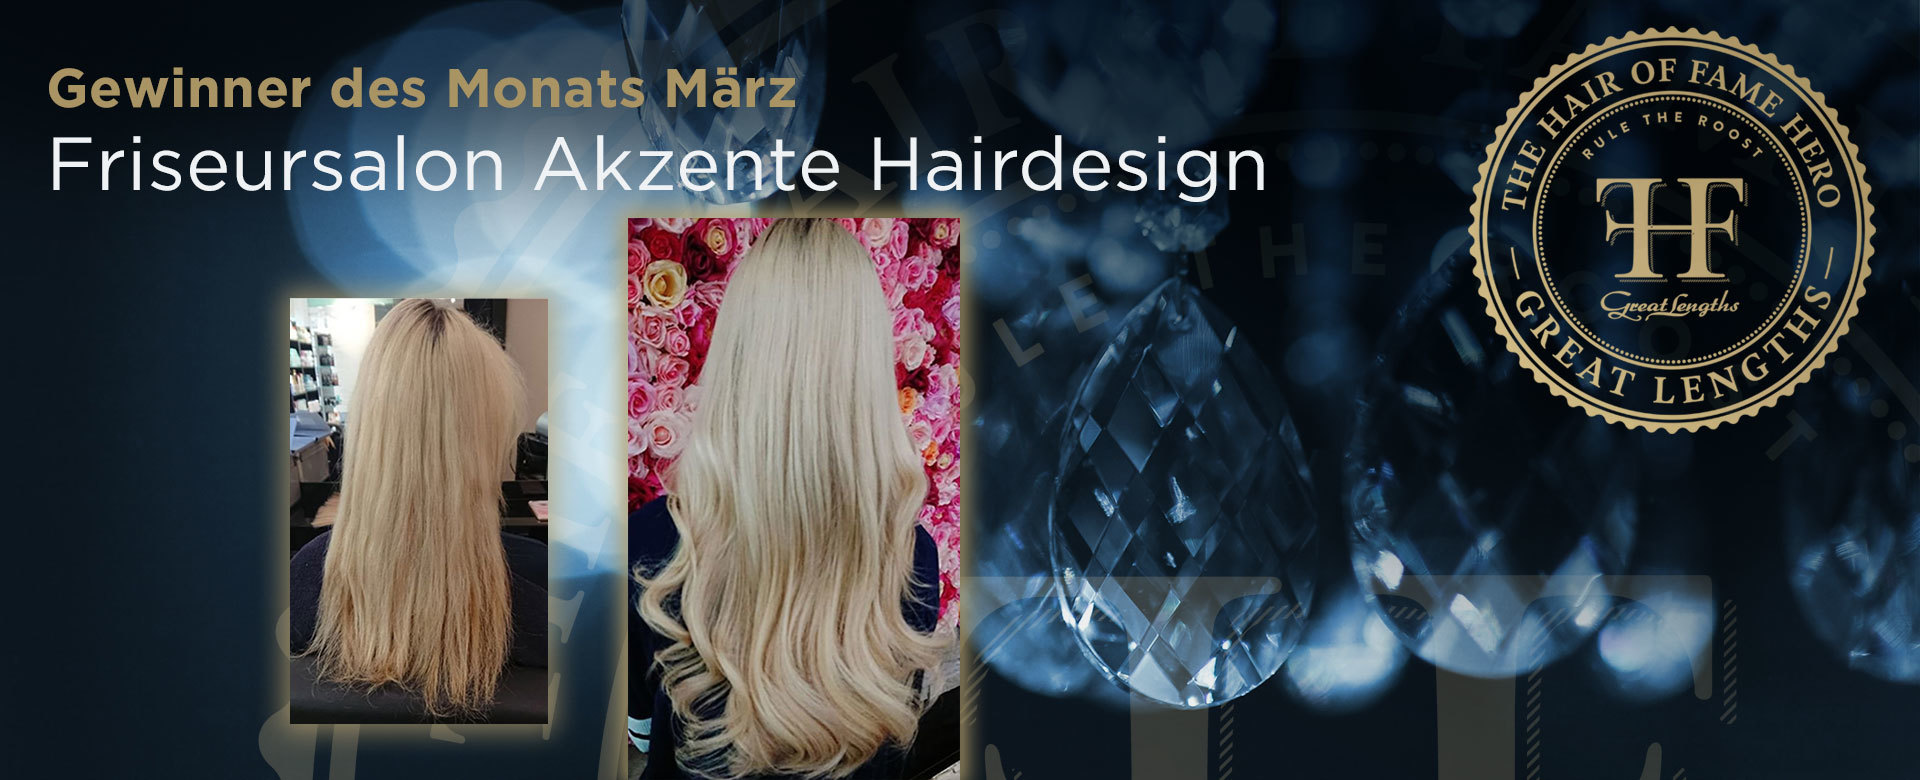 Hair-of-Fame Hero Monat März 2018 (© Great Lengths)